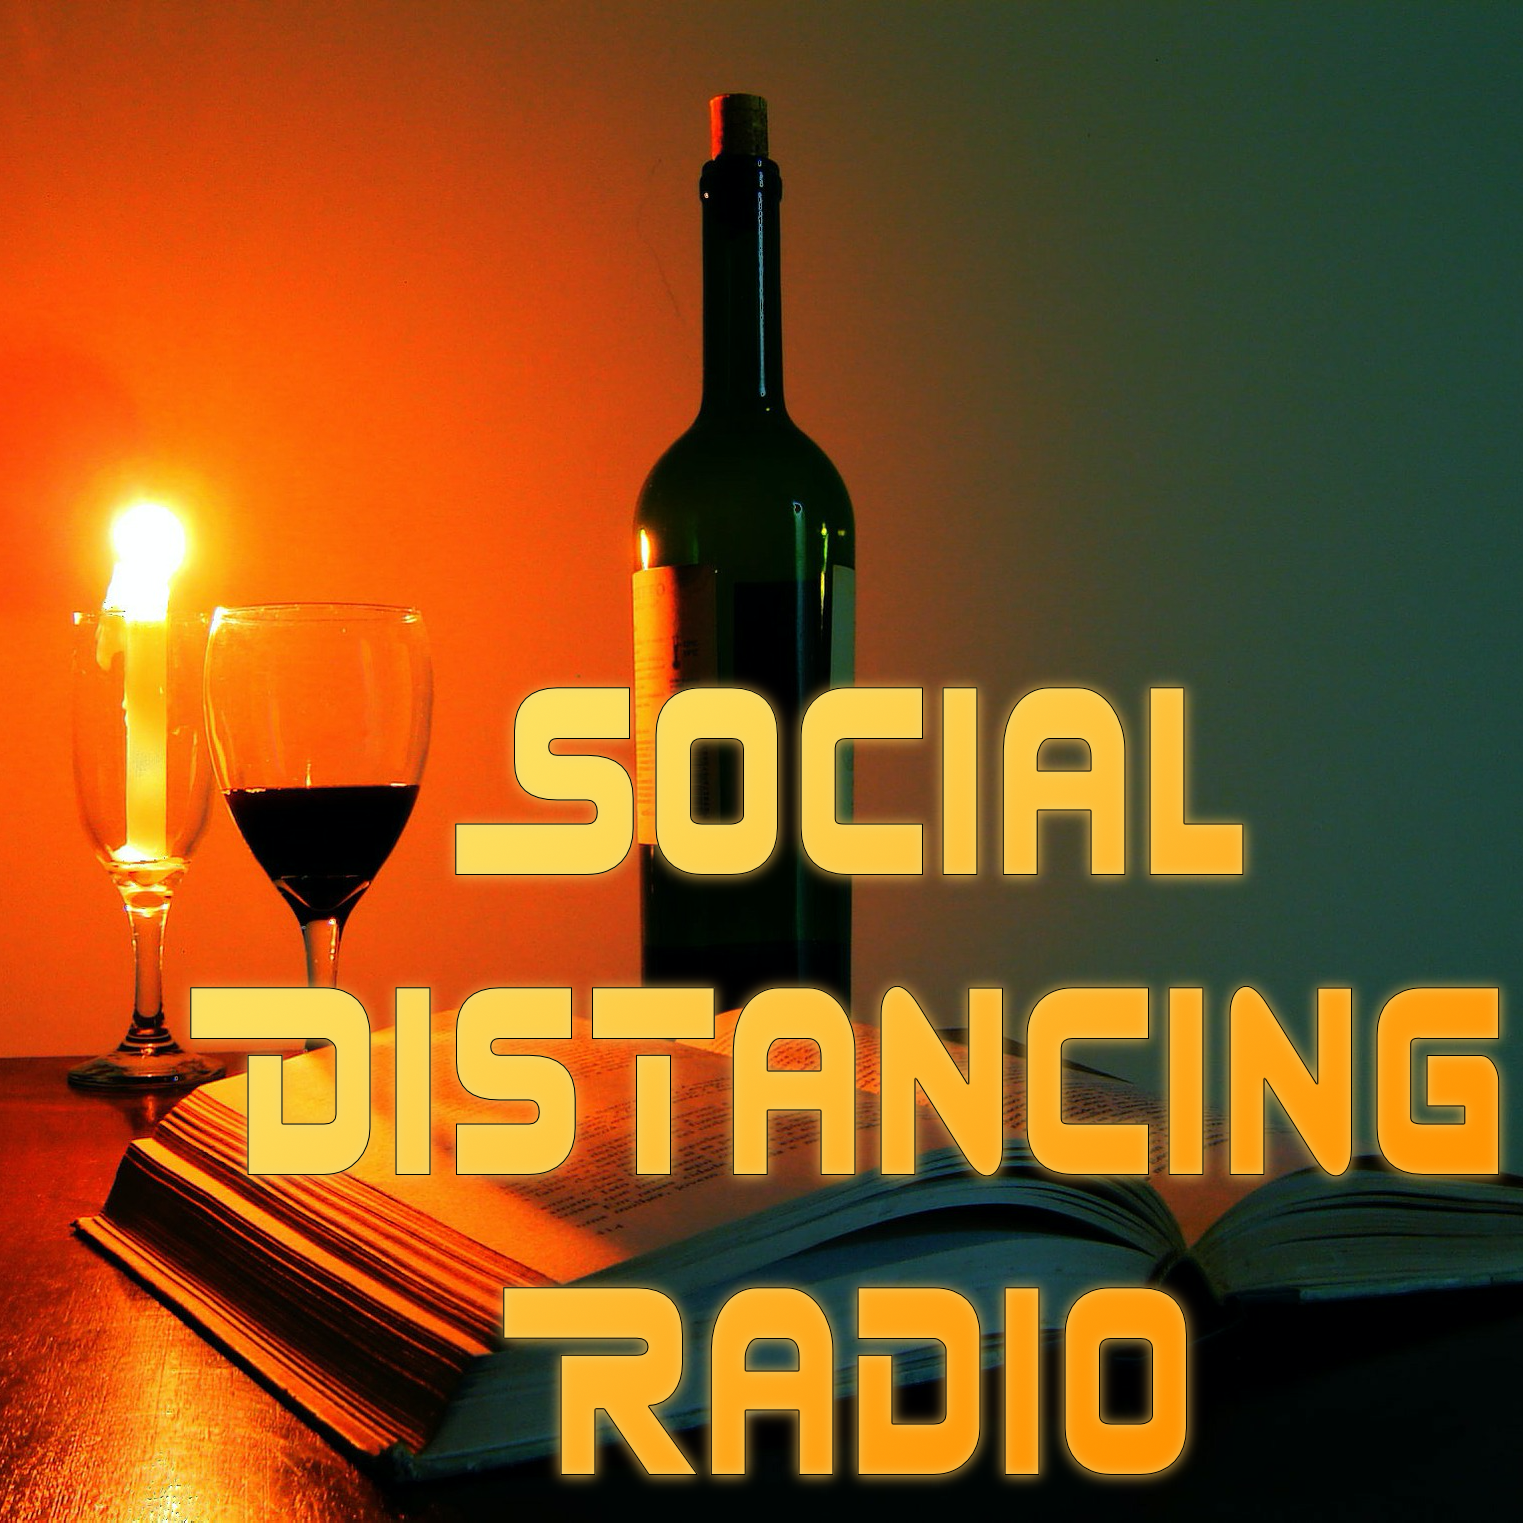 The logo of Social Distancing Radio: a book, a candle, and a glass and bottle of wine.